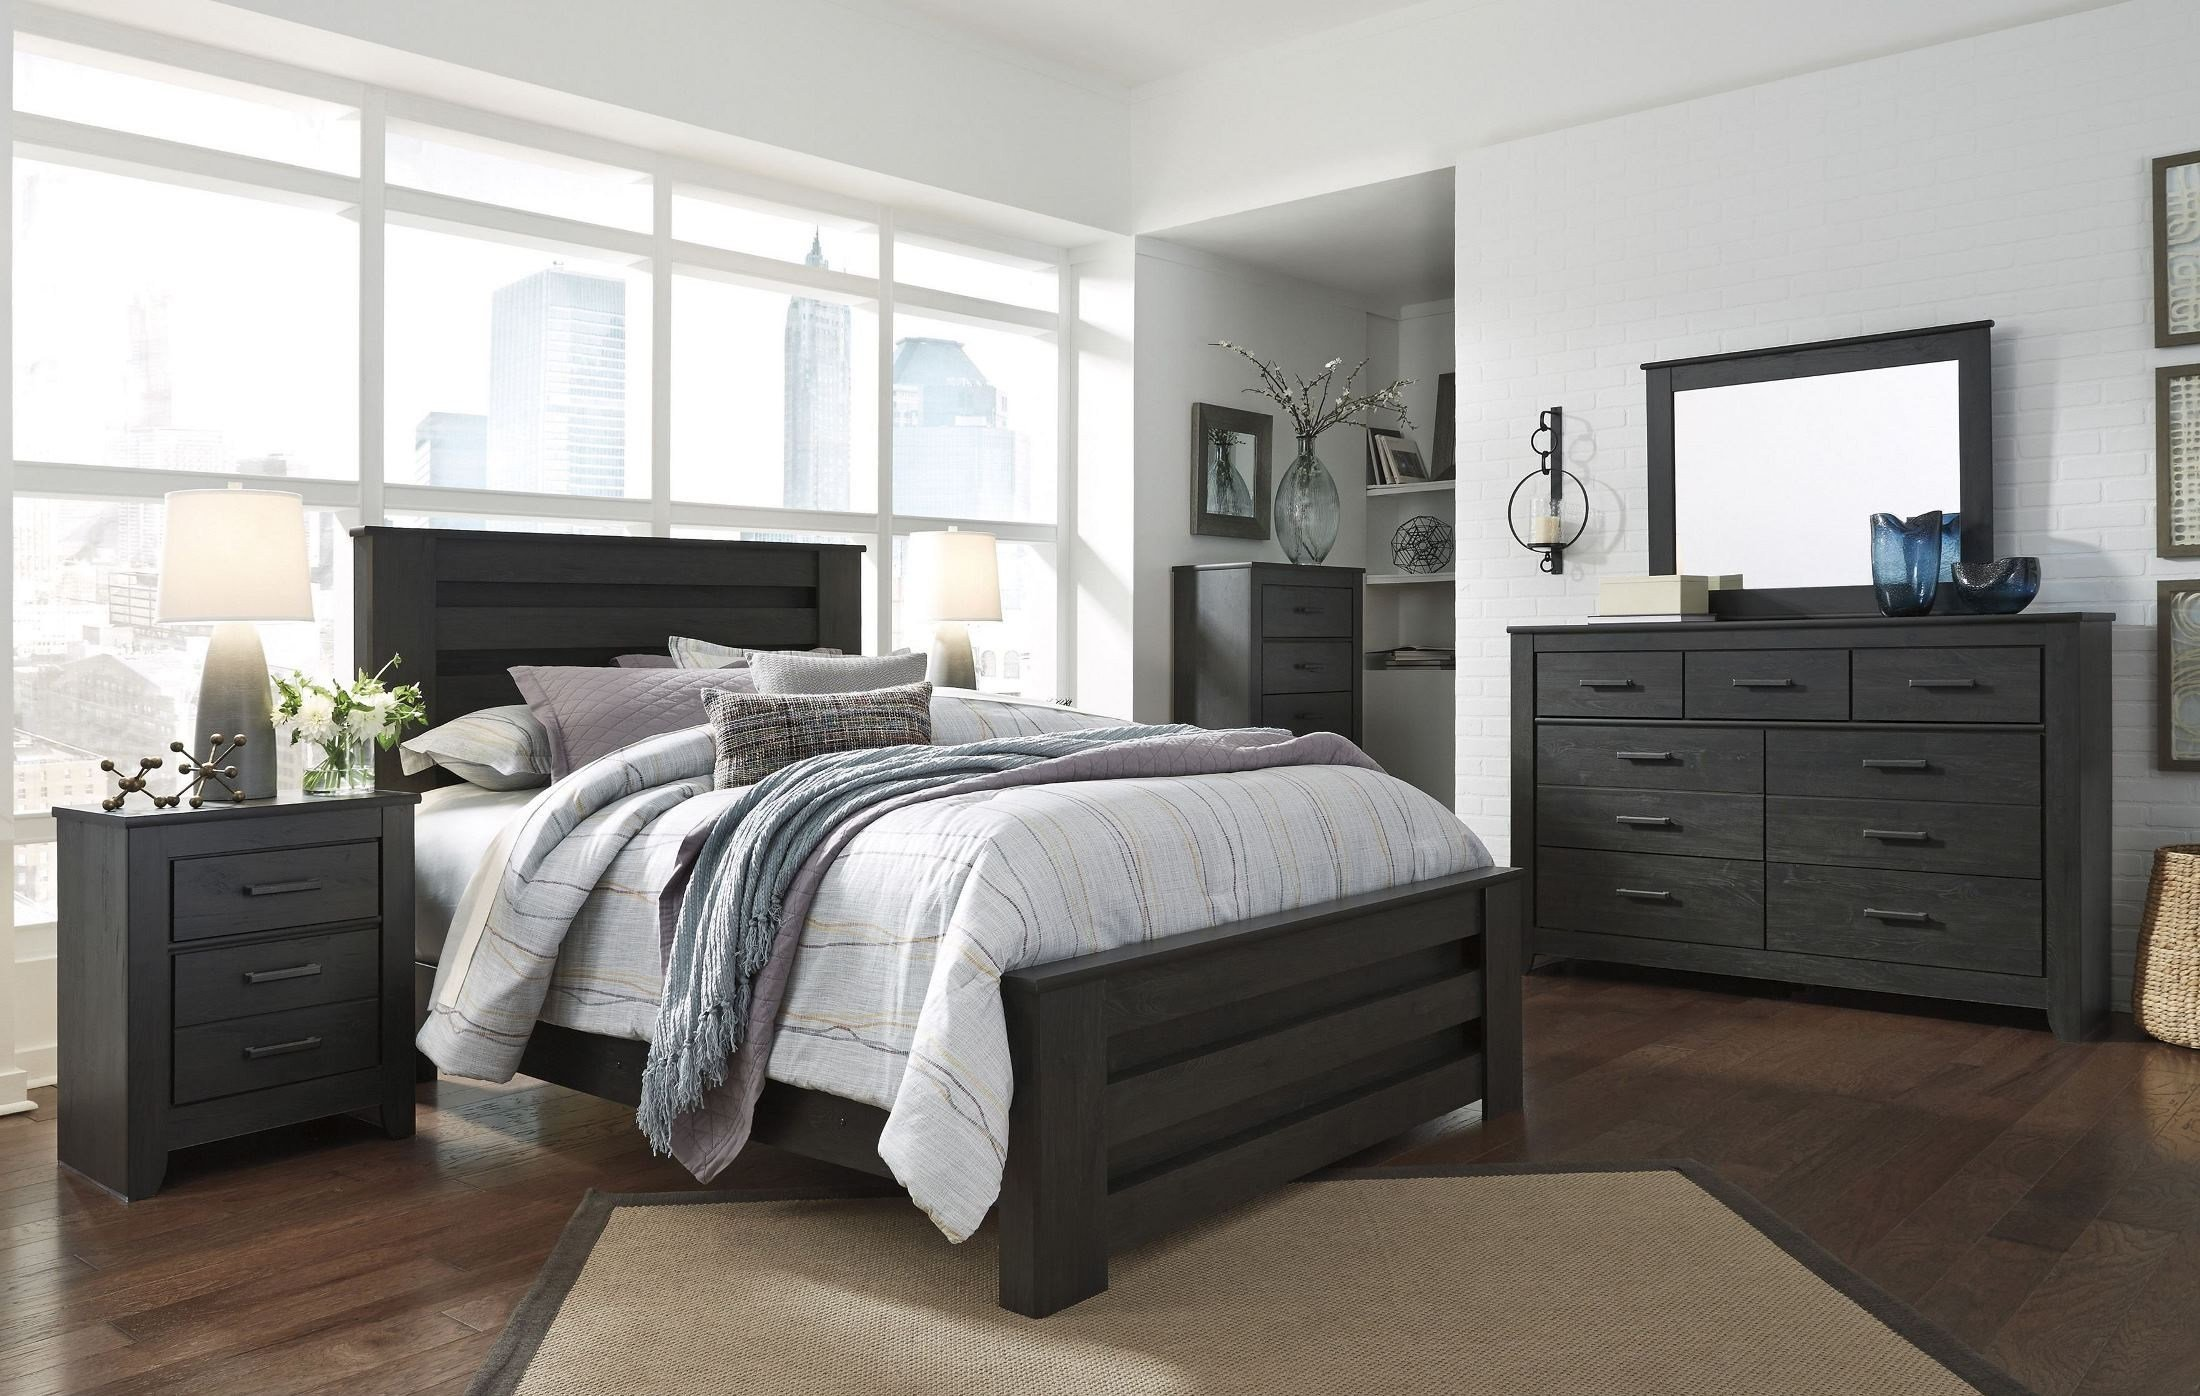 Best Brinxton Black Poster Bedroom Set B249 67 64 98 Ashley With Pictures